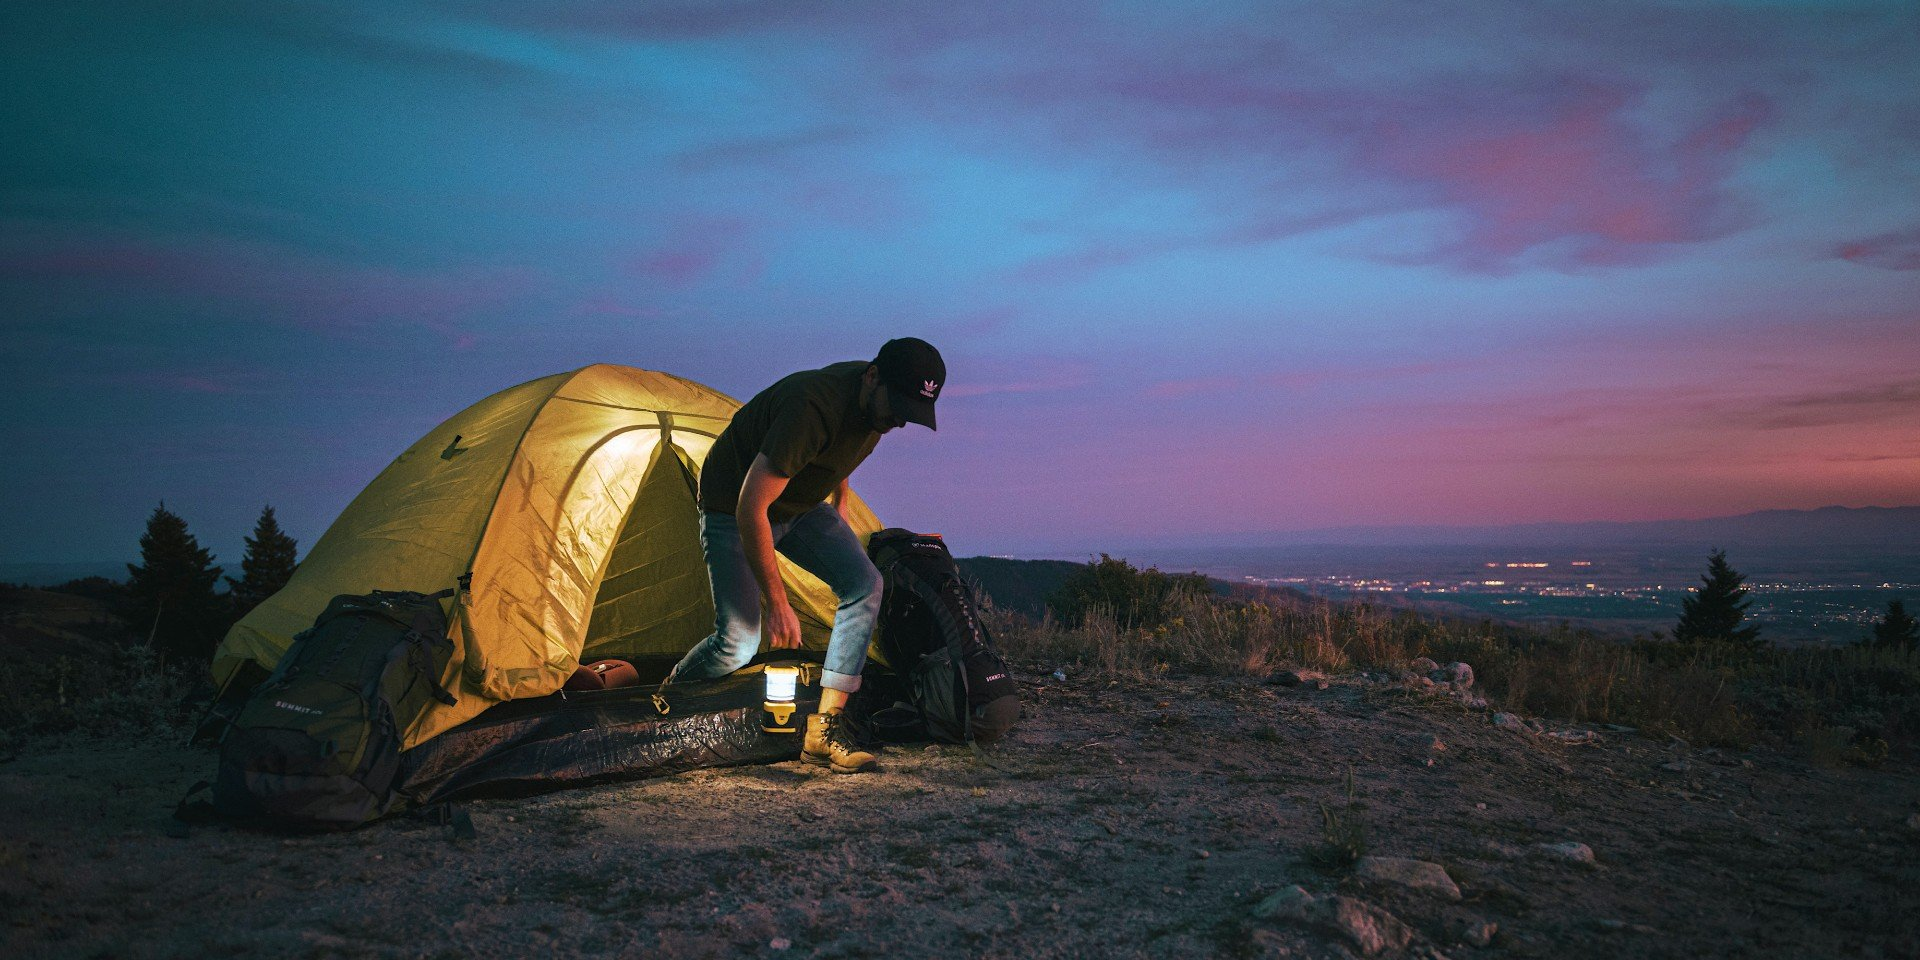 Best backpacking tent for tall person: 7 ultralight tents for tall people in 2020